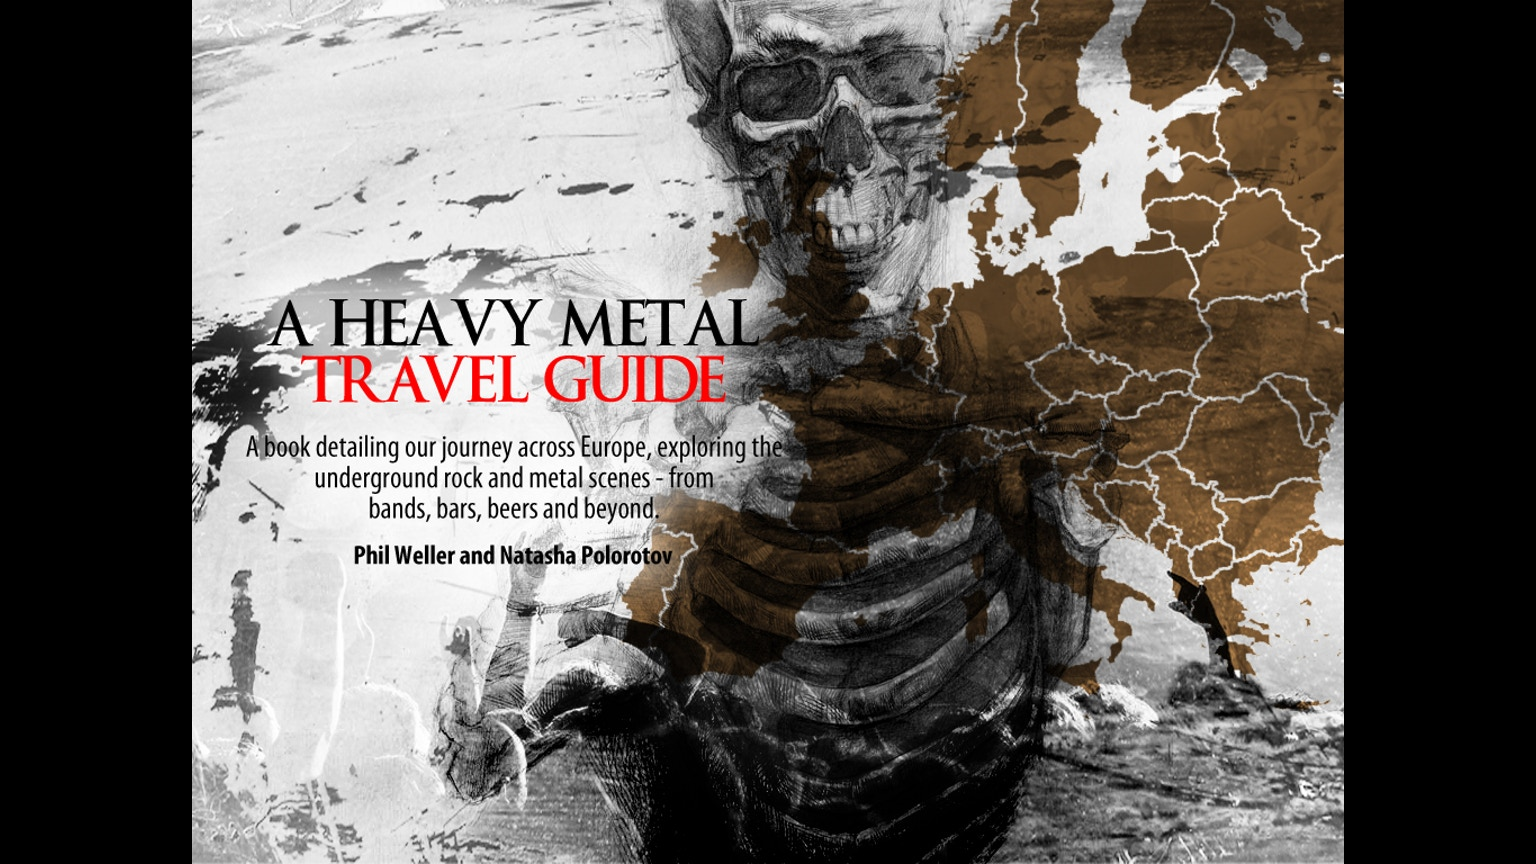 Jam heavy metal user manual